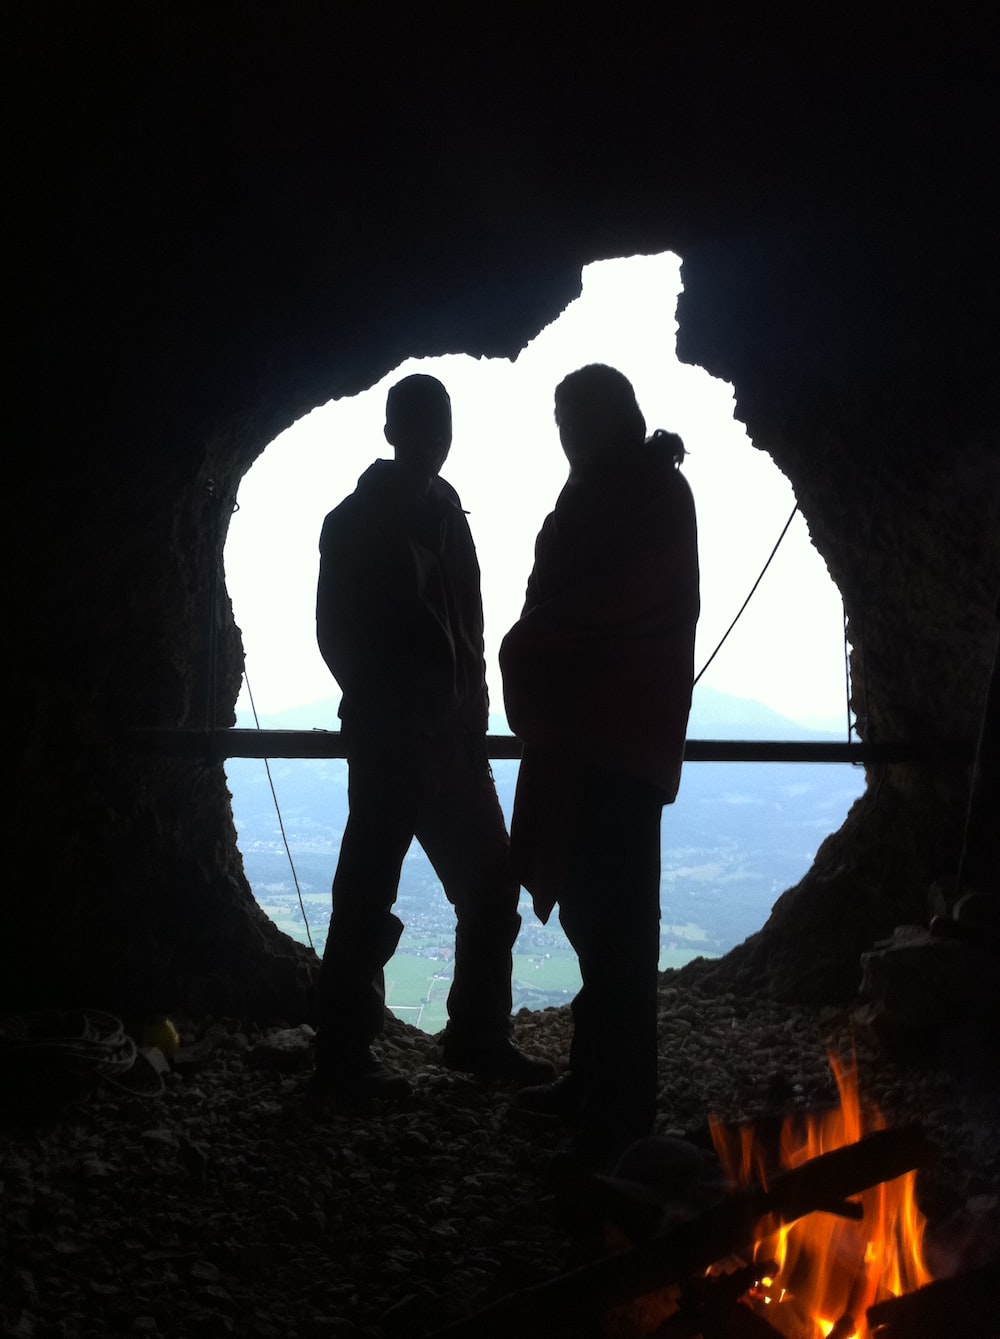 silhouette of man and woman standing in cave during daytime